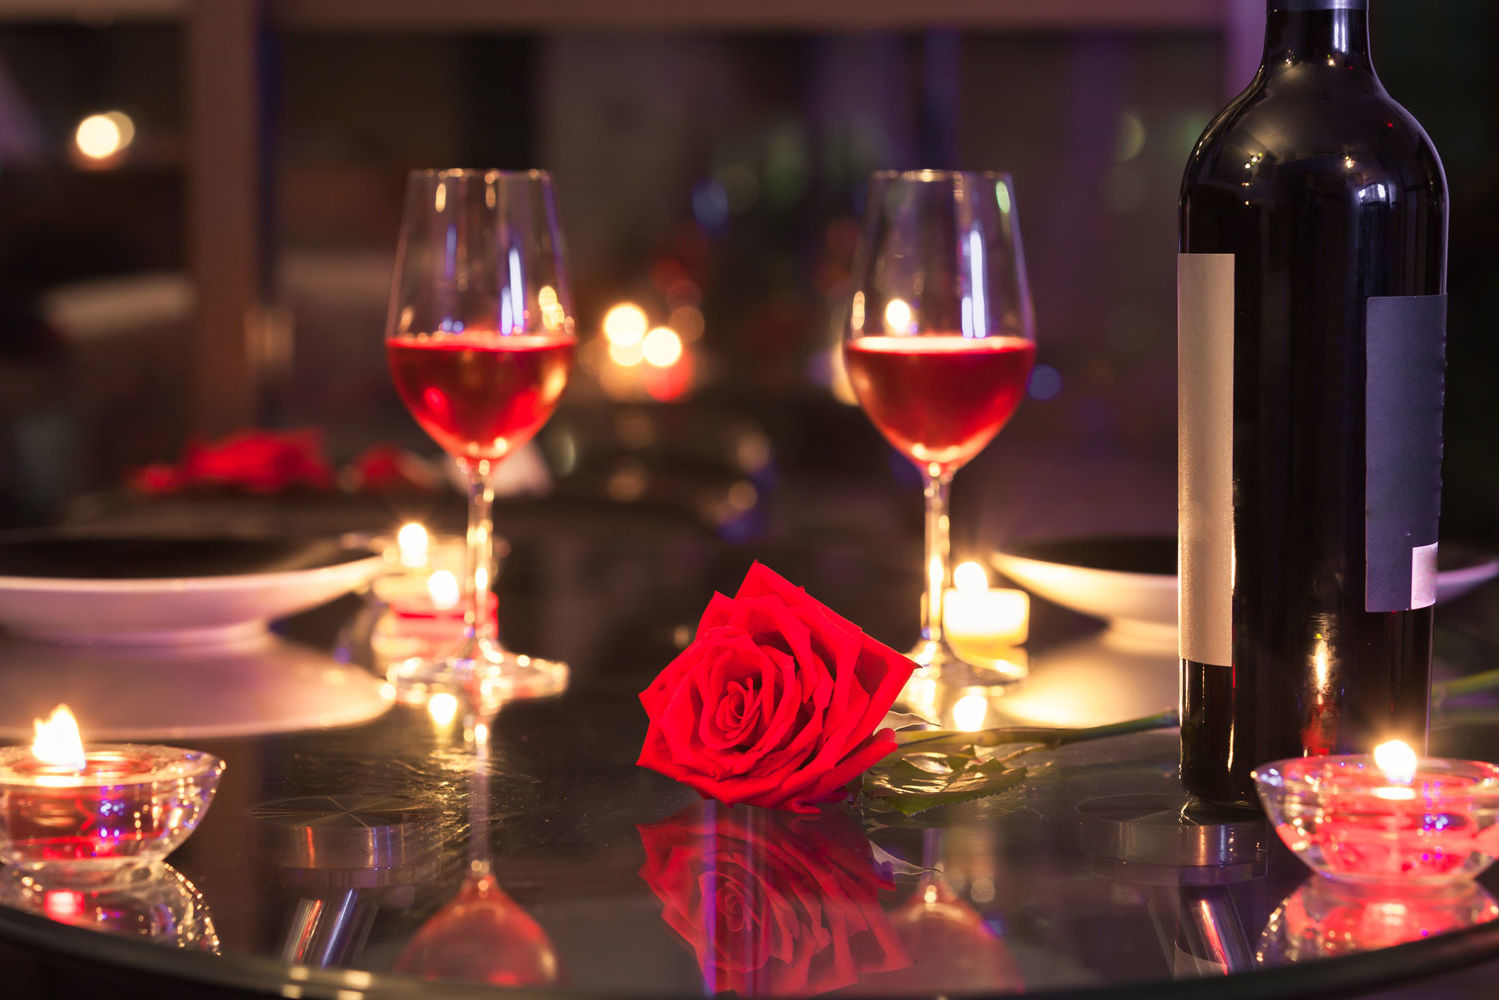 The 100 Most Romantic Restaurants in the U.S.